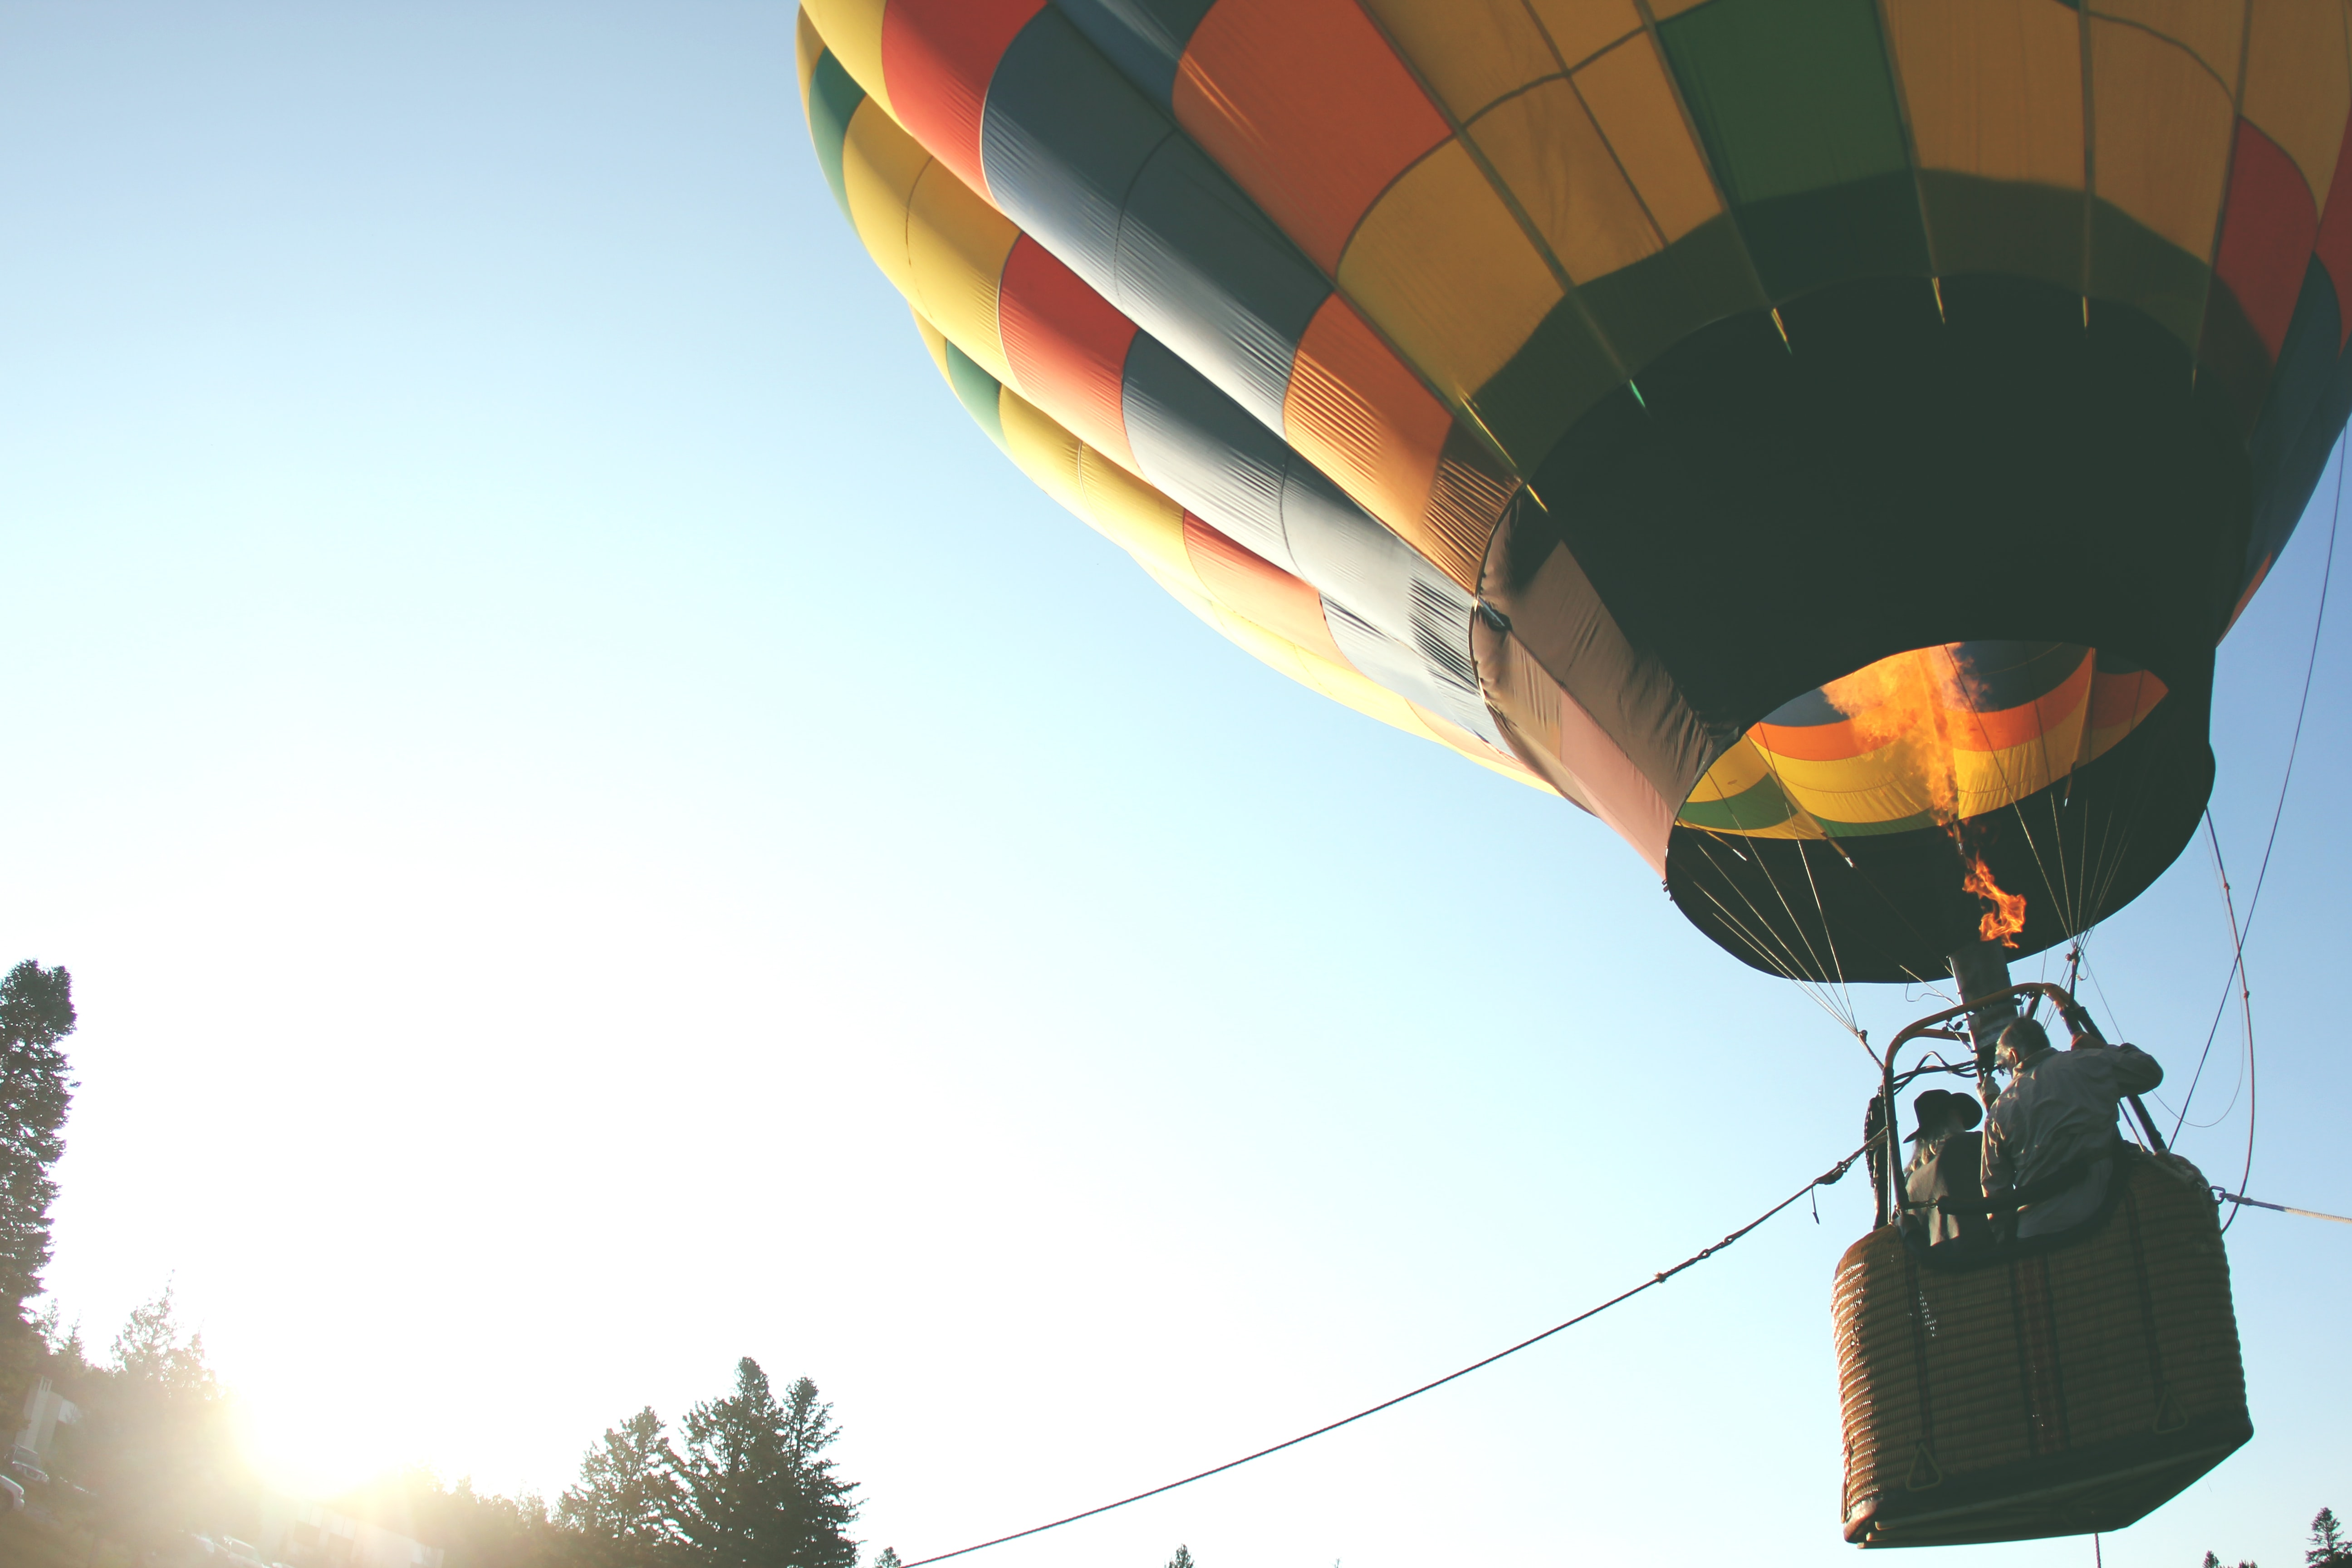 person riding on hot air balloon